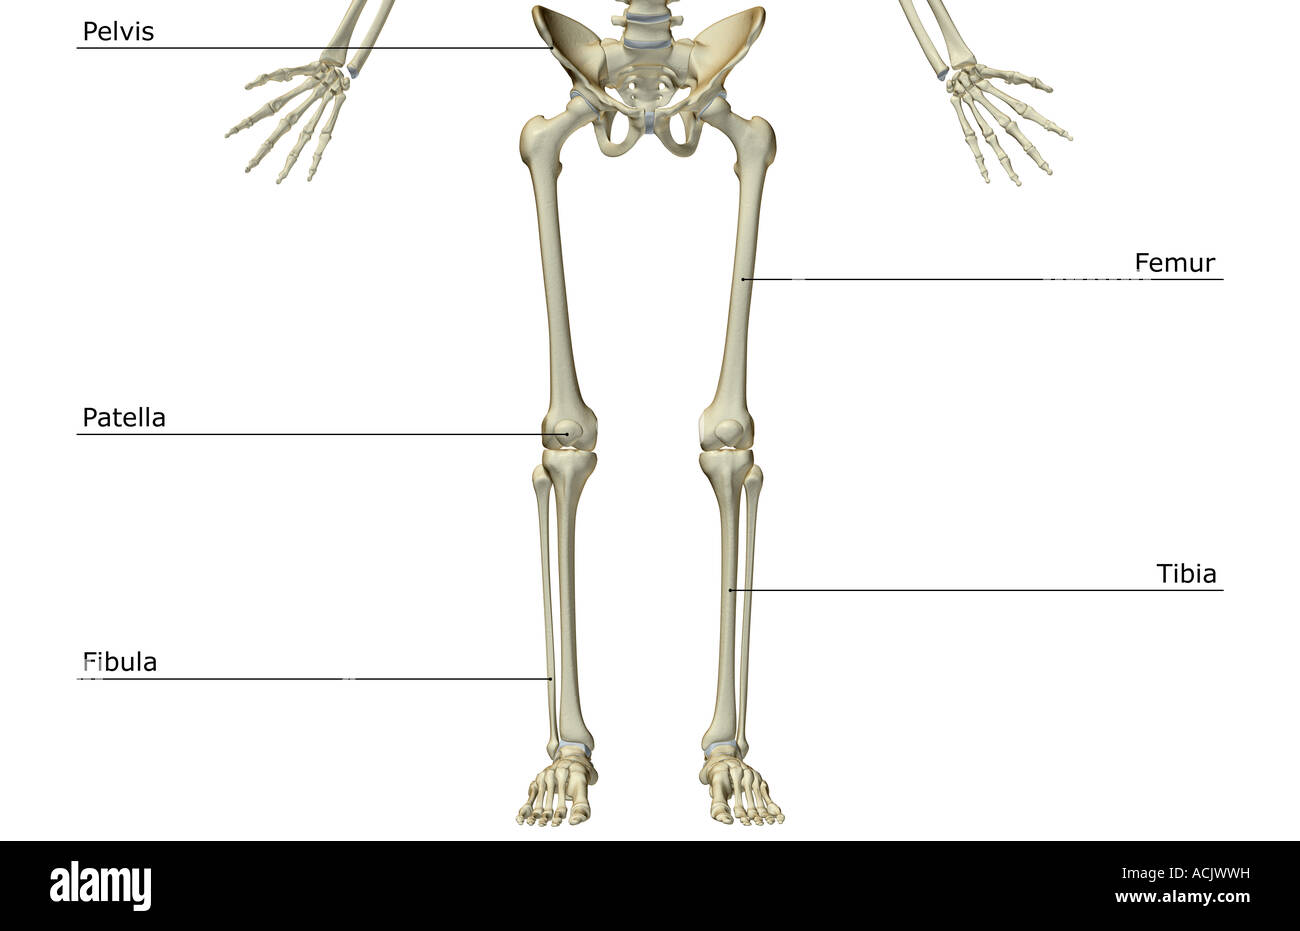 Lower Body Bones Stockfotos & Lower Body Bones Bilder - Alamy